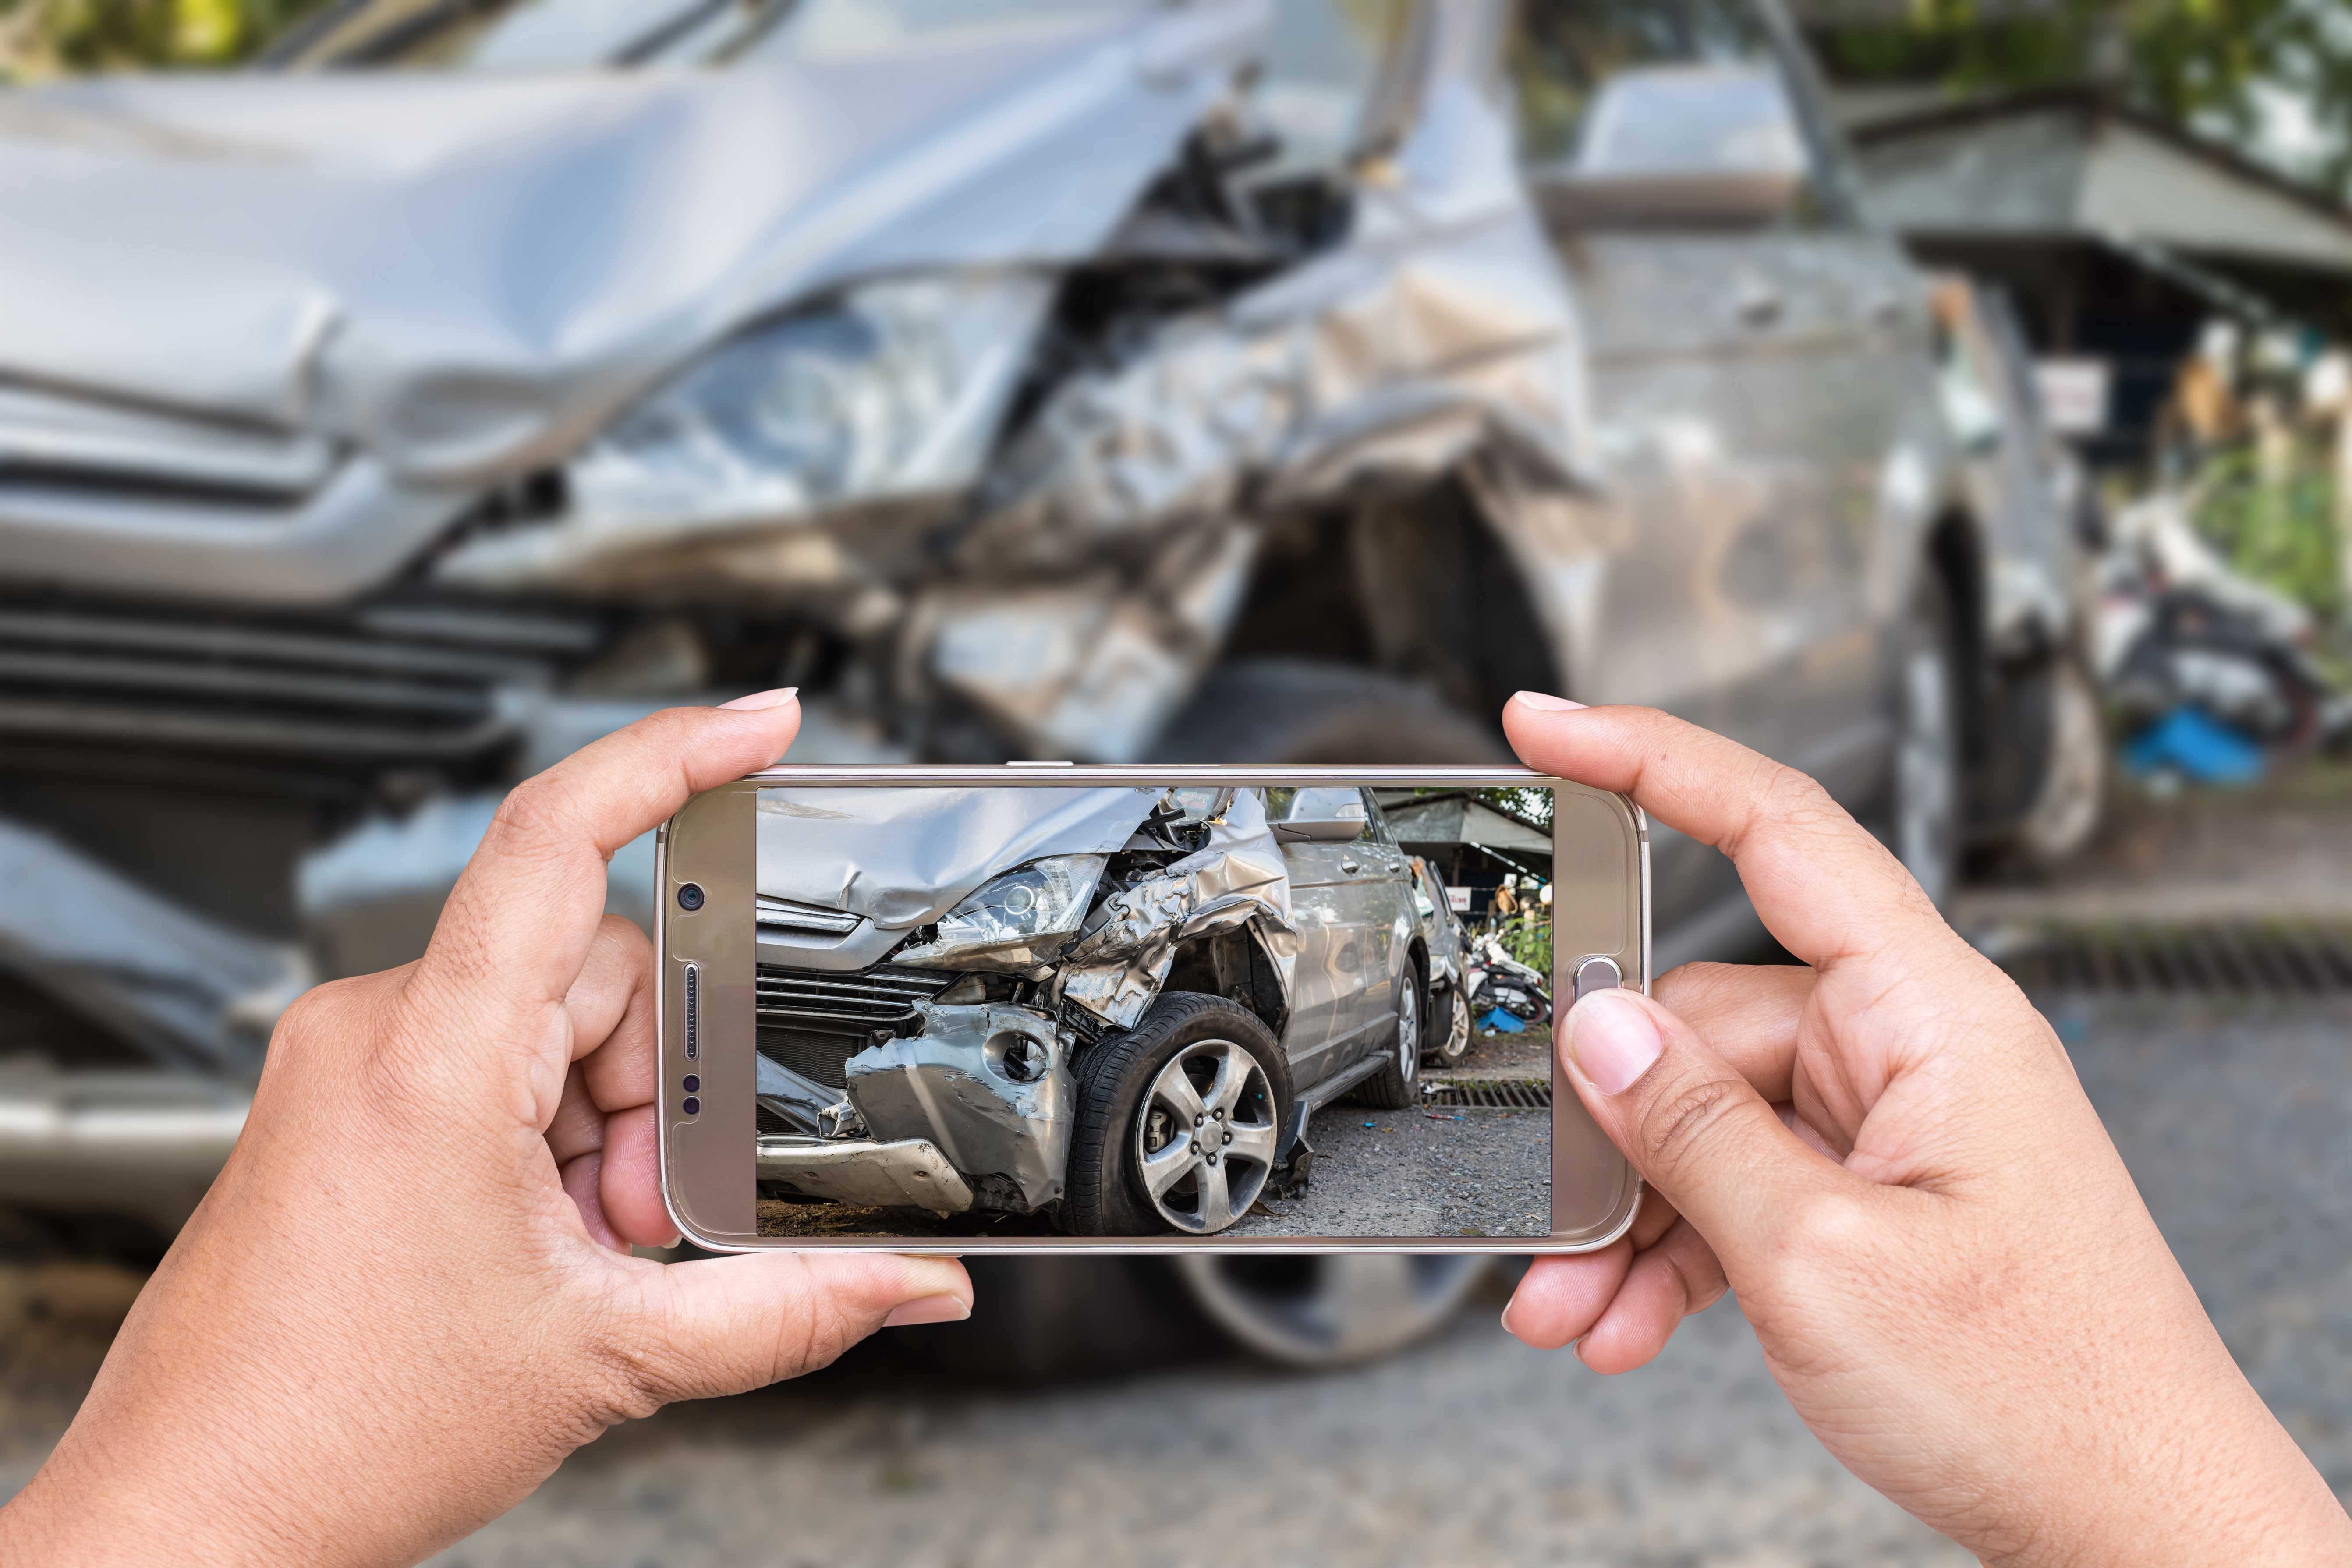 Taking Pictures of the Car Accident Scene